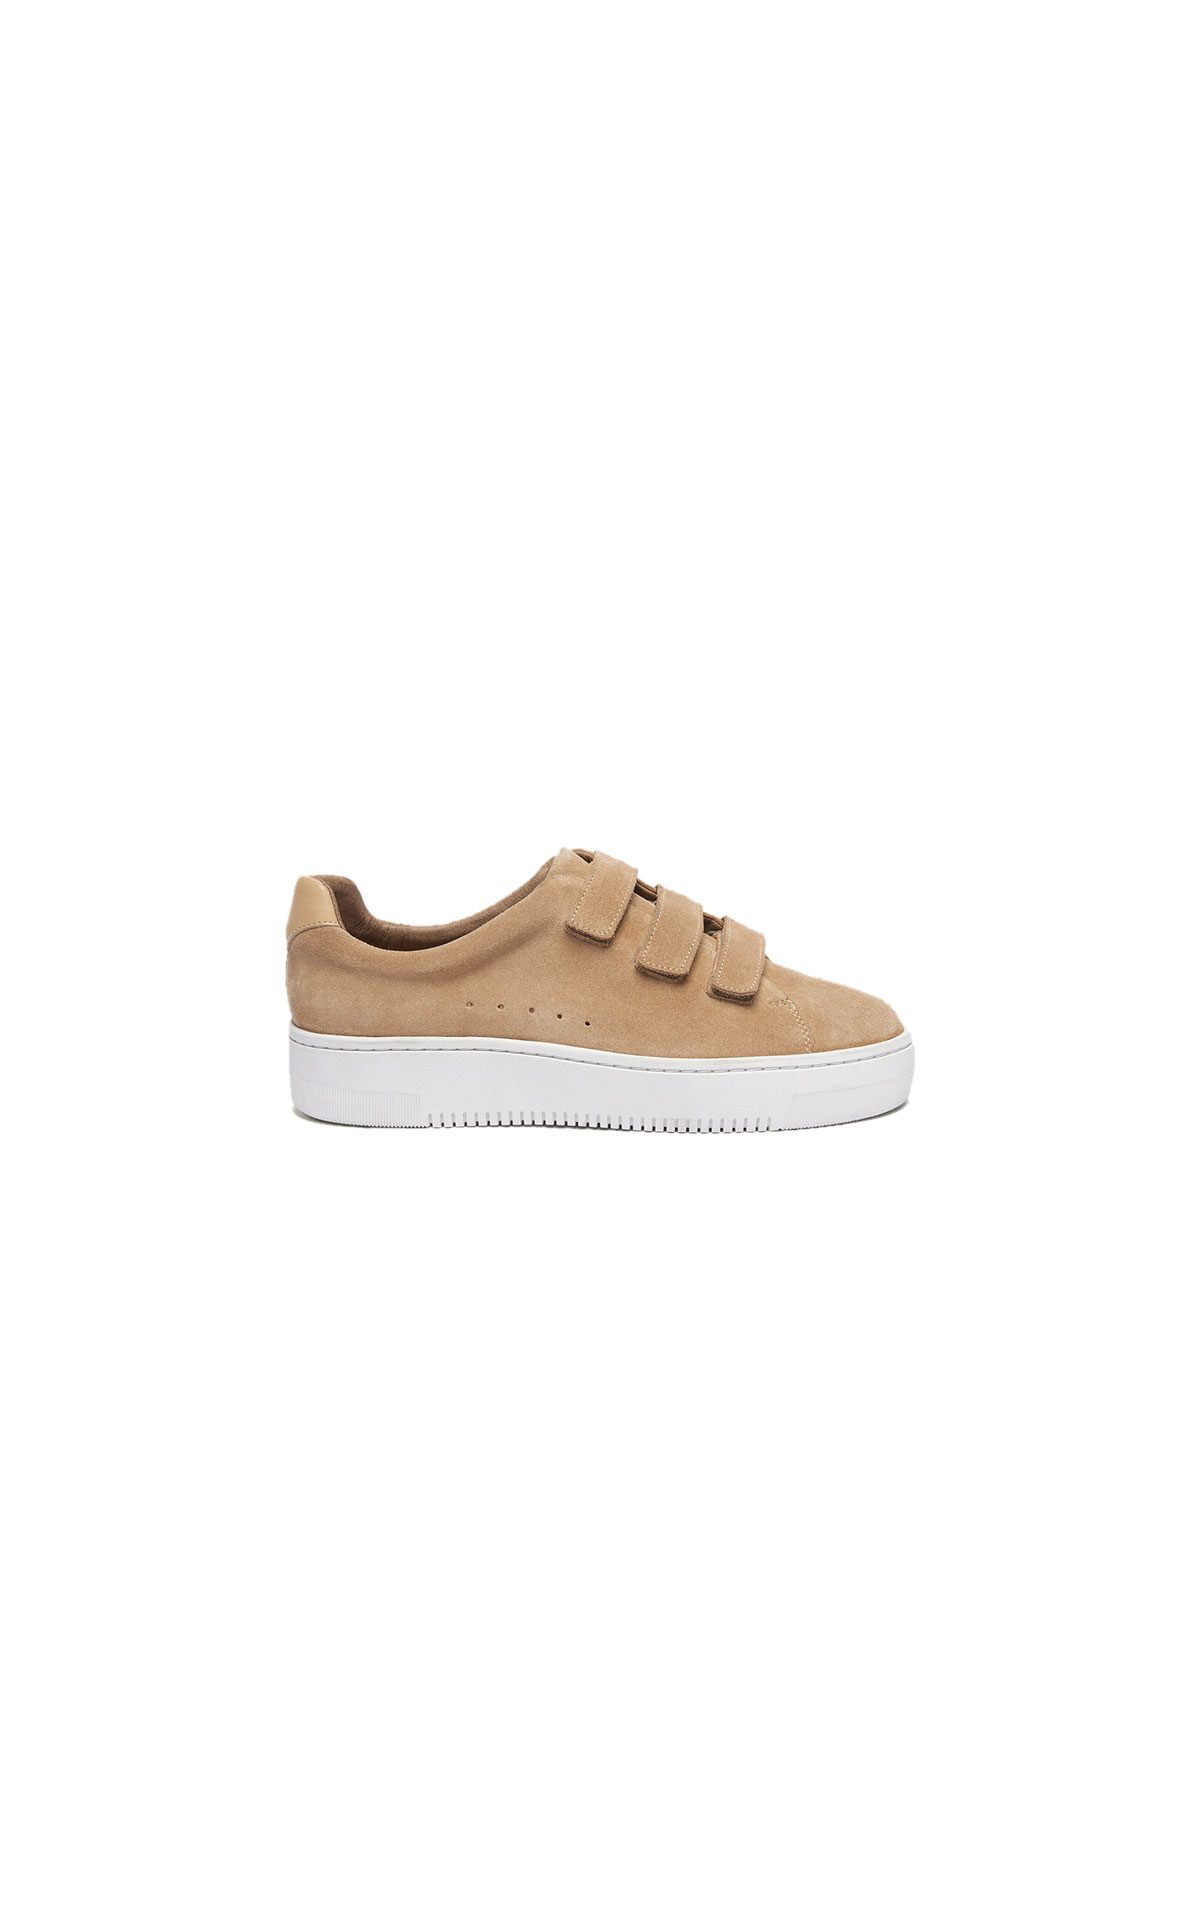 Sandro camel sneaker at The Bicester Village Shopping Collection